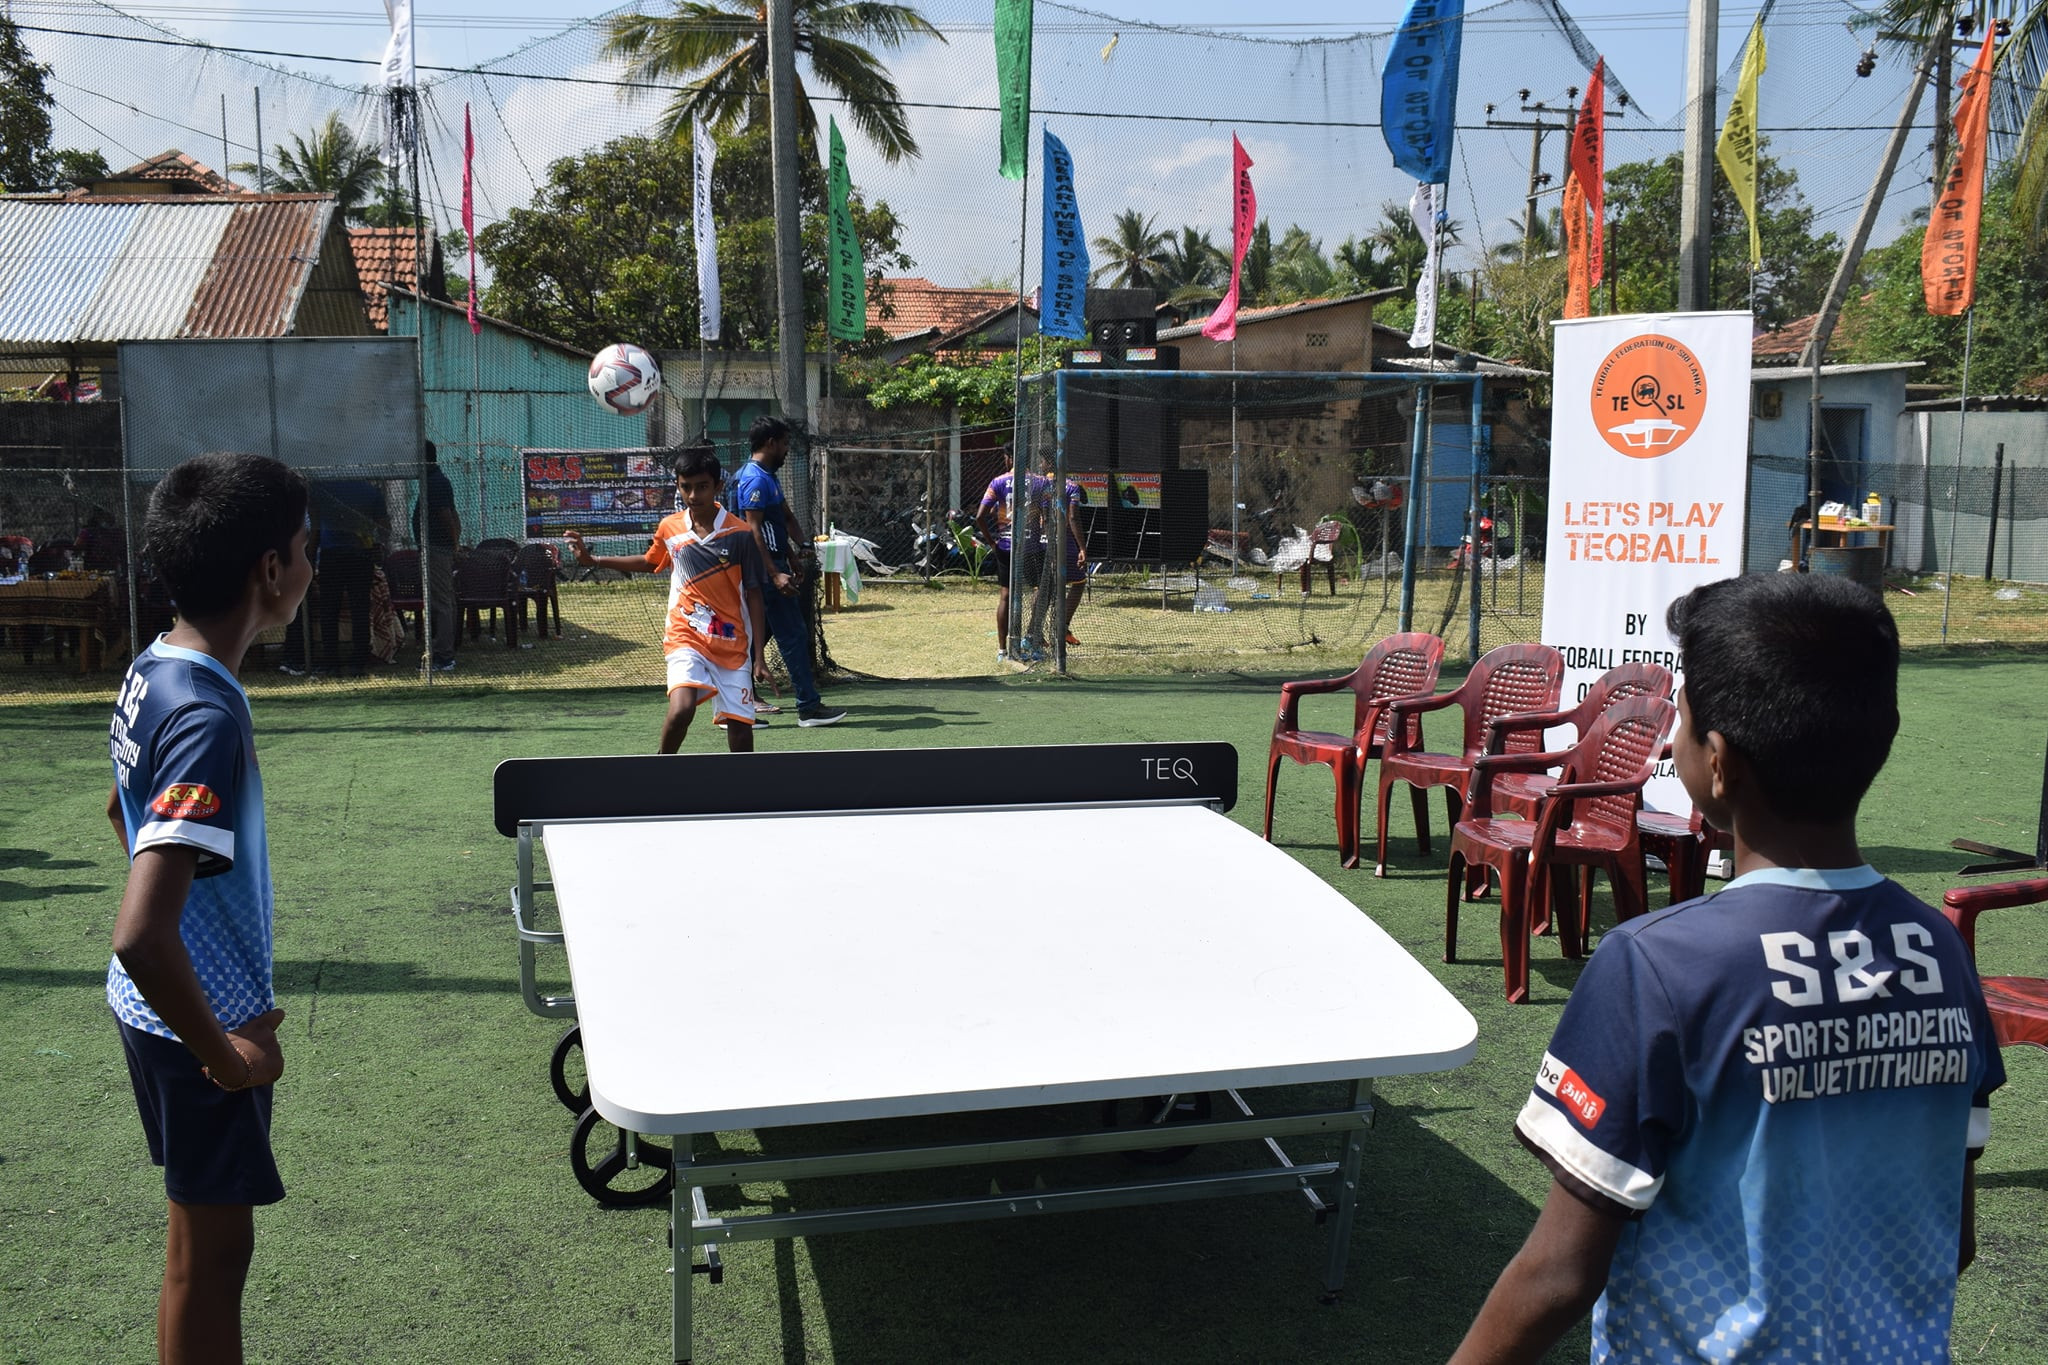 Sri Lanka Teqball Federation to focus on creating positive change through sport